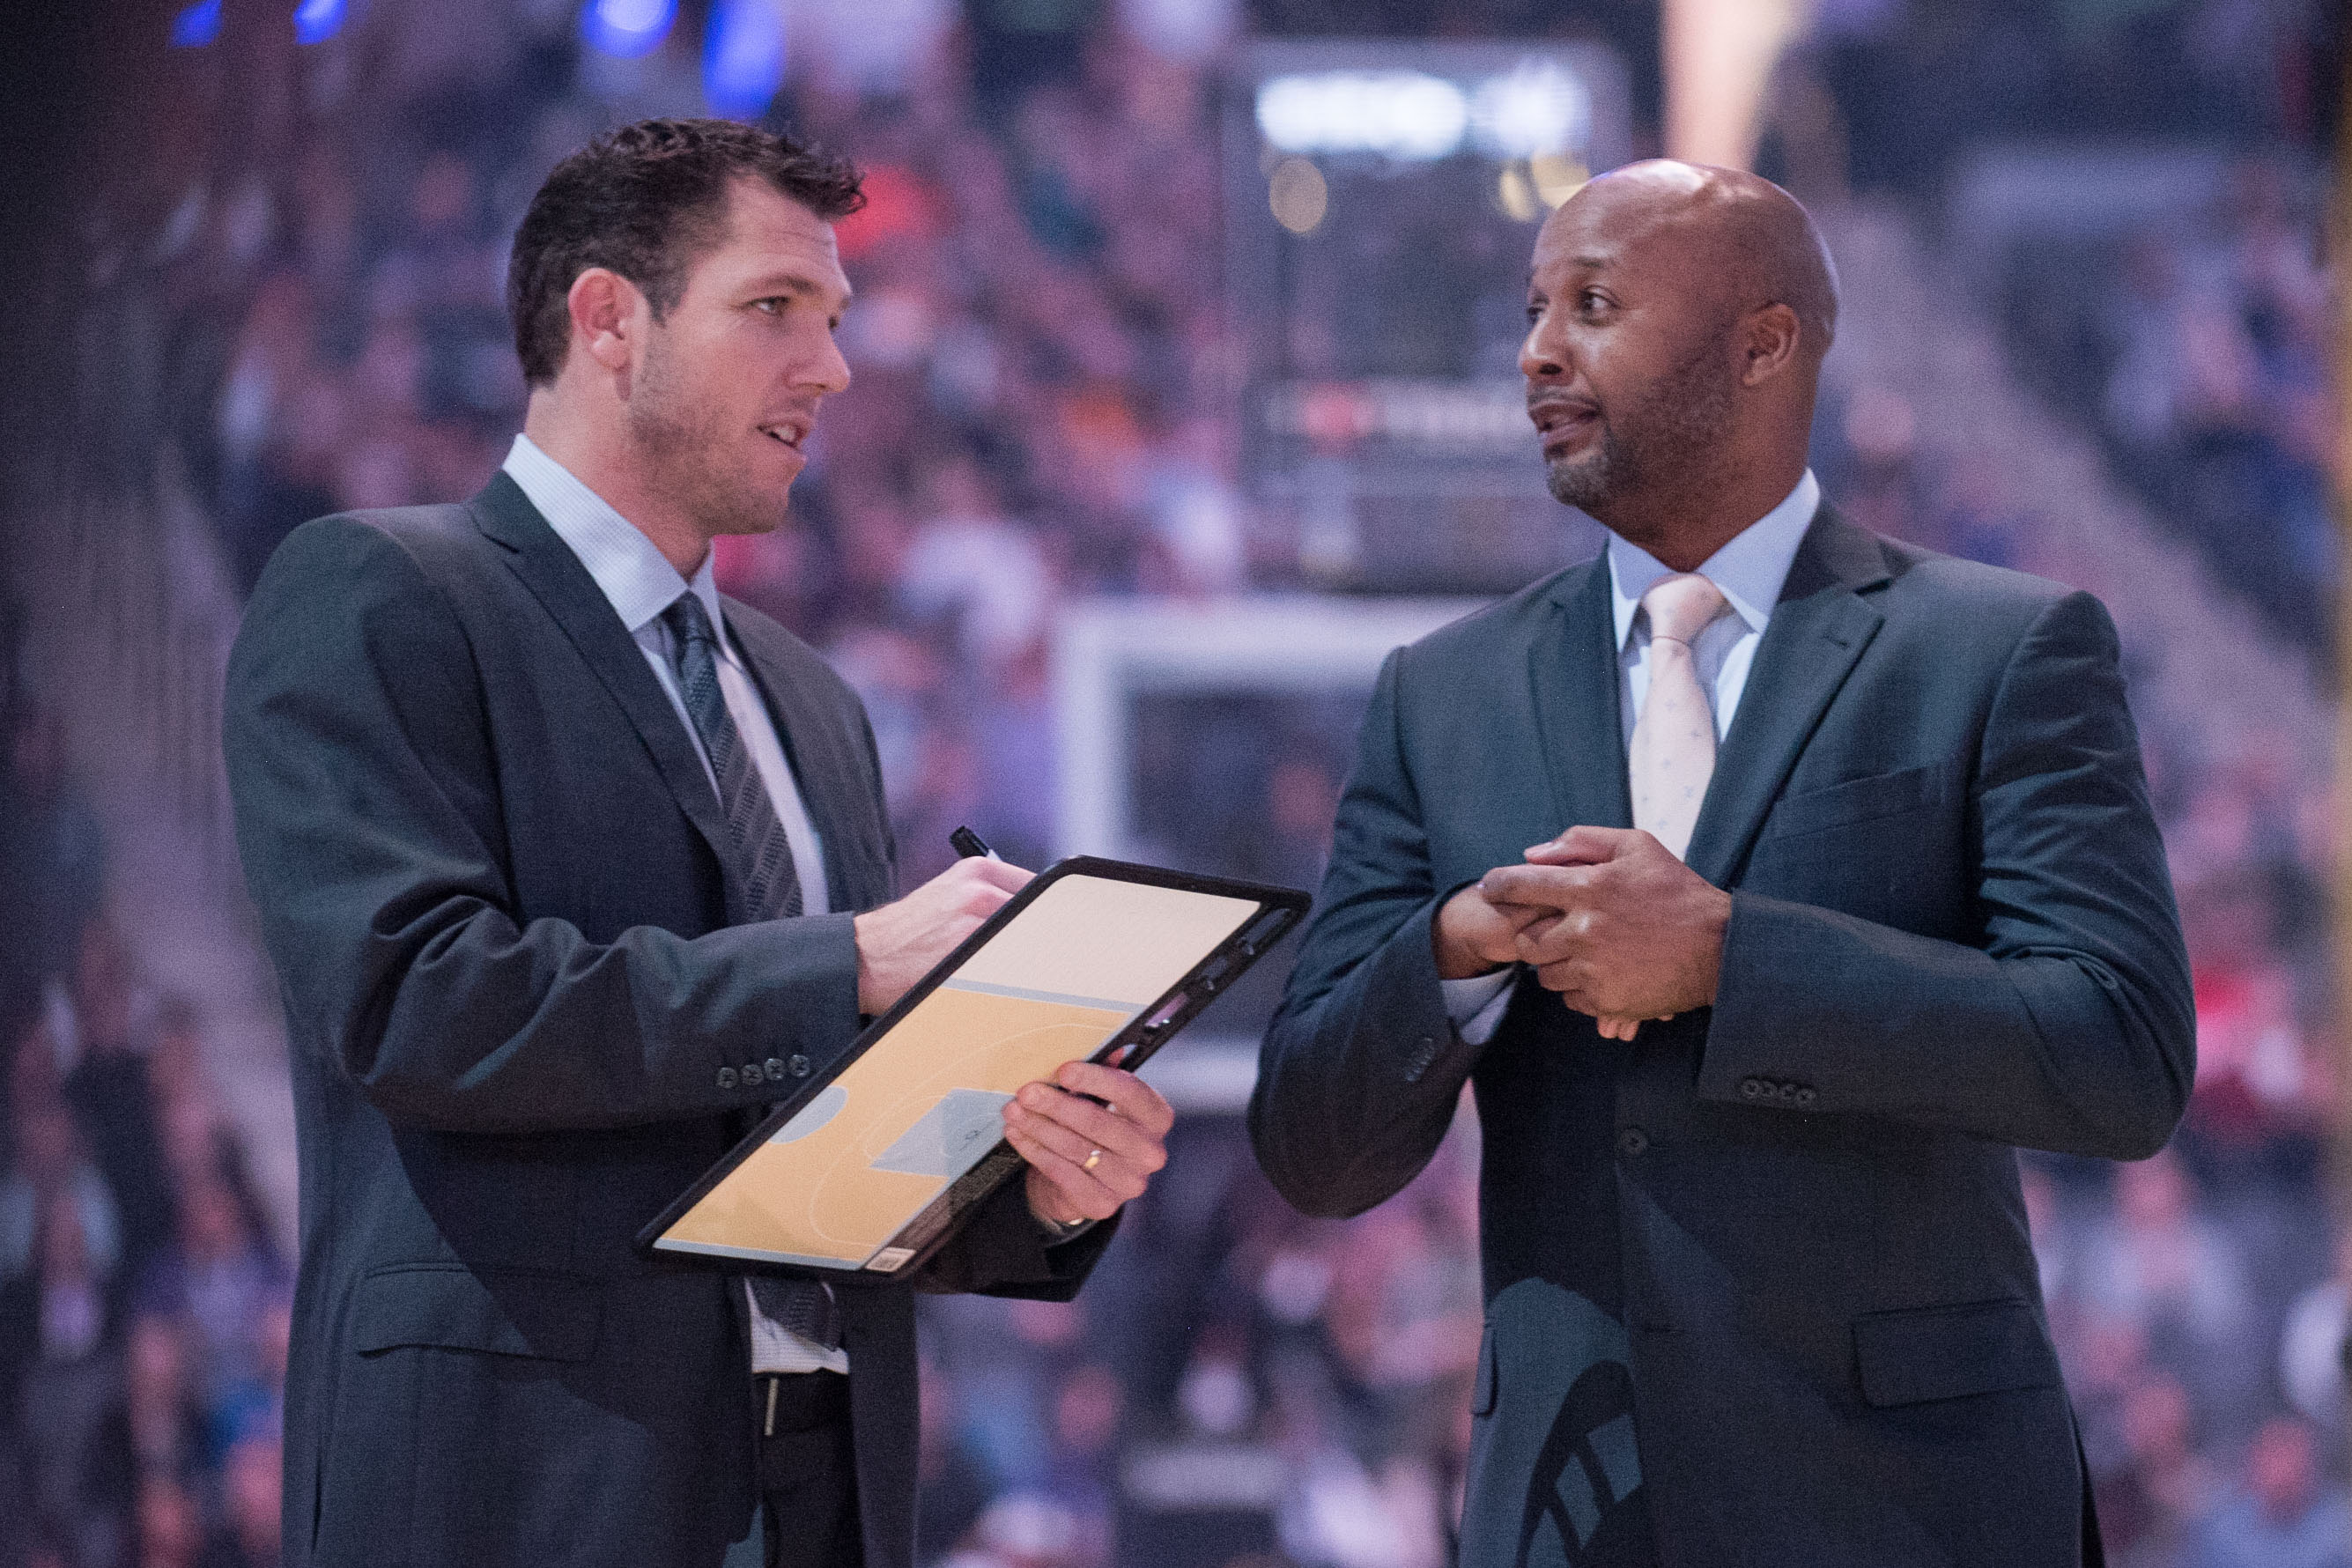 Dec 12, 2016; Sacramento, CA, USA; Los Angeles Lakers head coach Luke Walton and assistant head coach Brian Shaw chat before the game against the Sacramento Kings at Golden 1 Center. Mandatory Credit: Ed Szczepanski-USA TODAY Sports